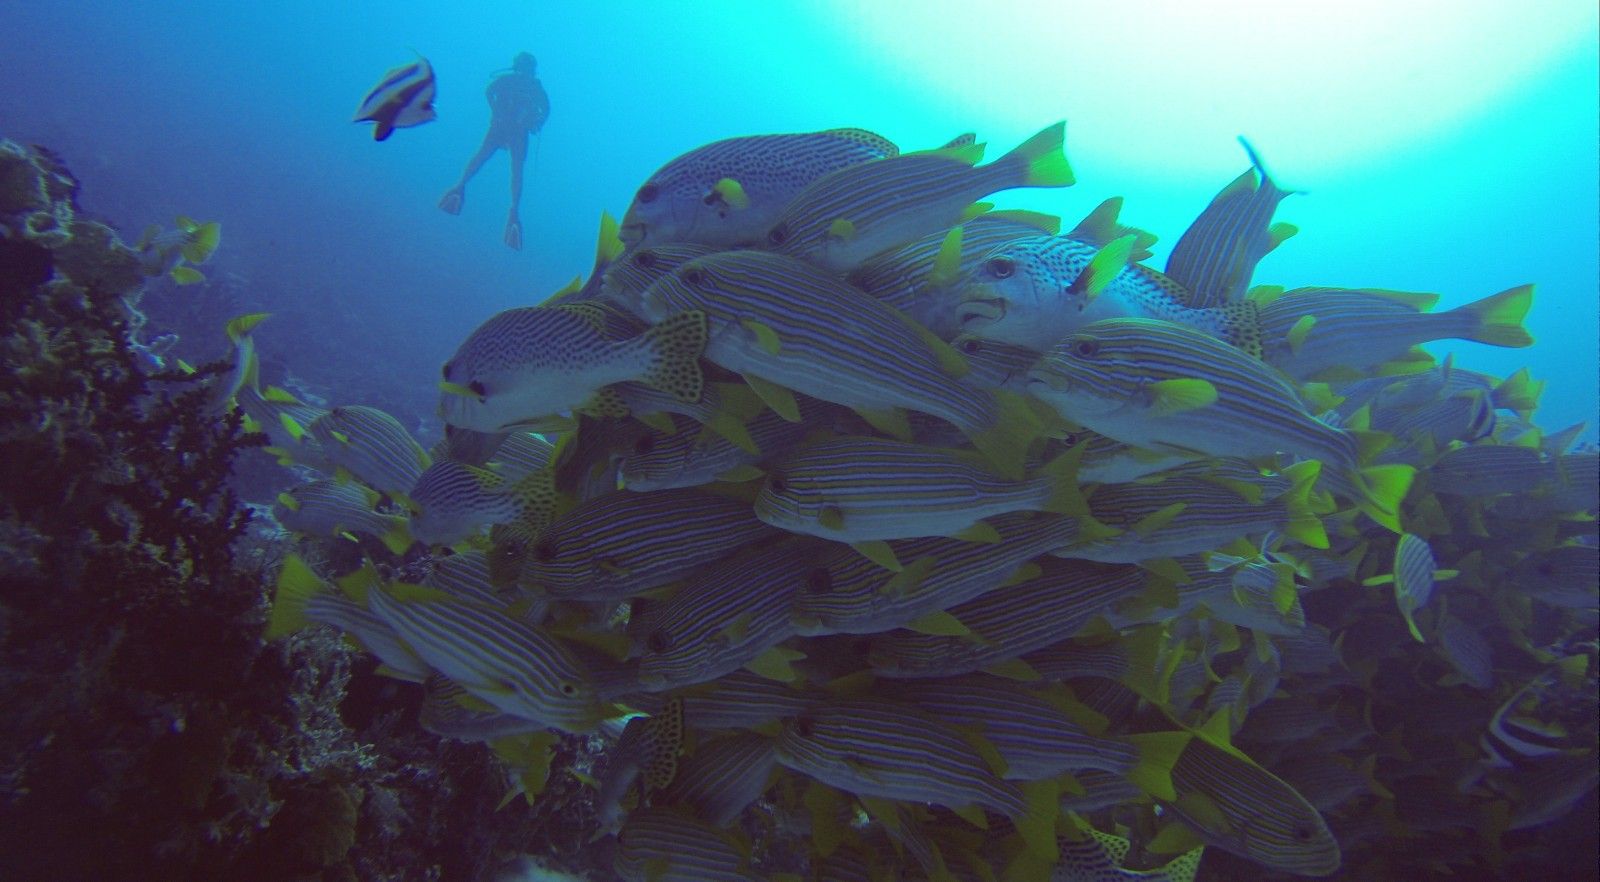 cape_kri_papua_diving